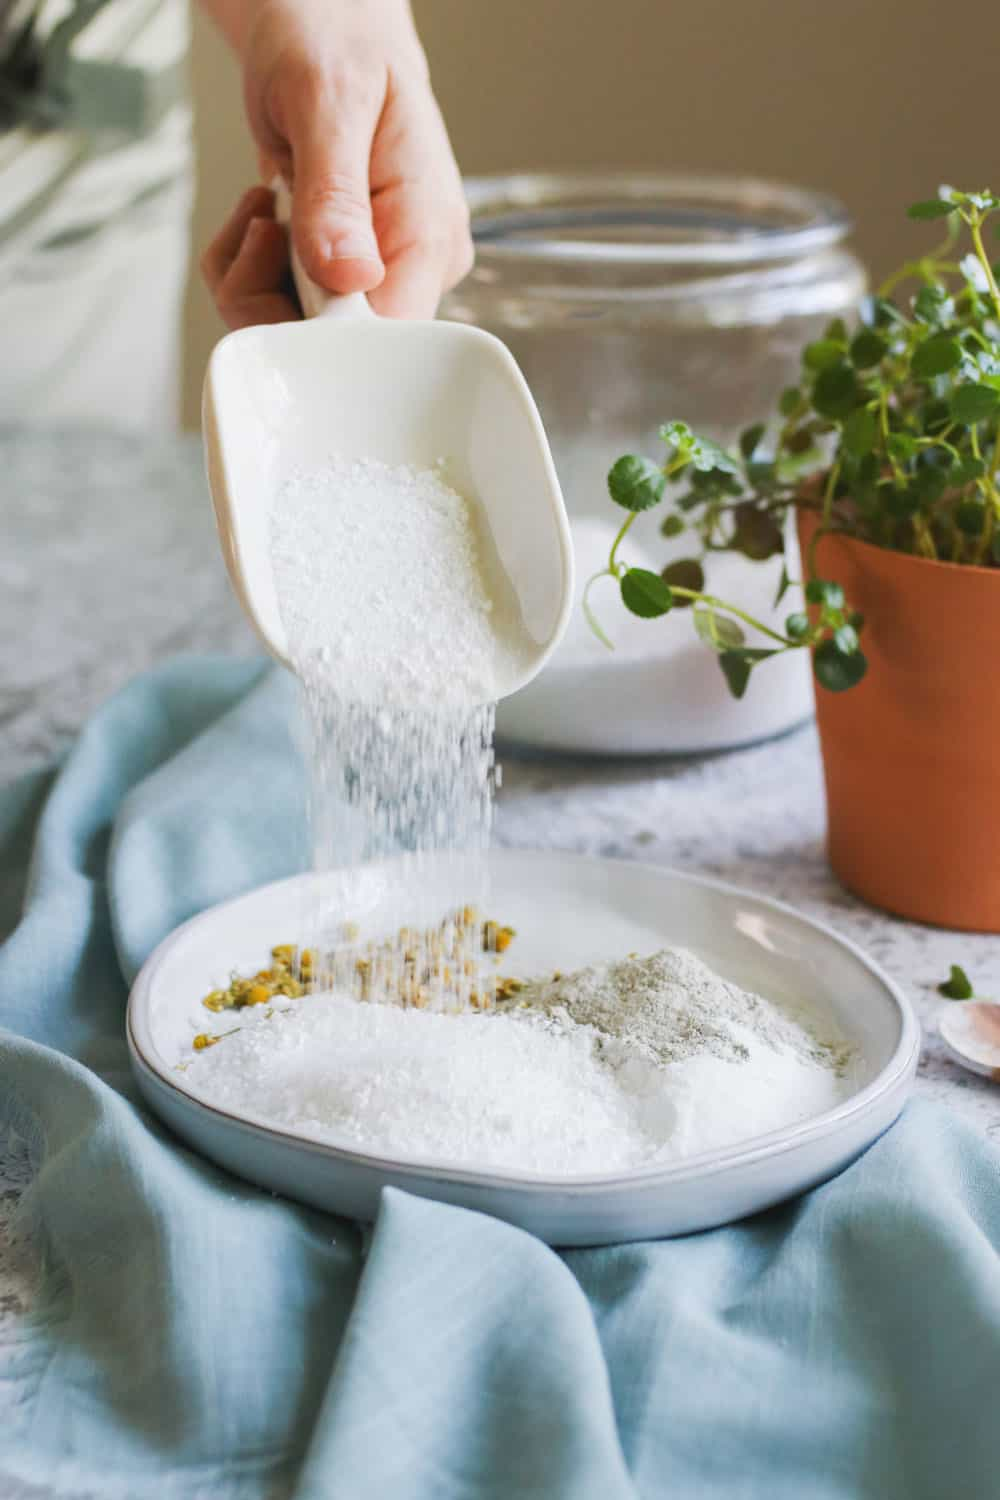 Treat Yourself to This Relaxing Epsom Salt Foot Soak